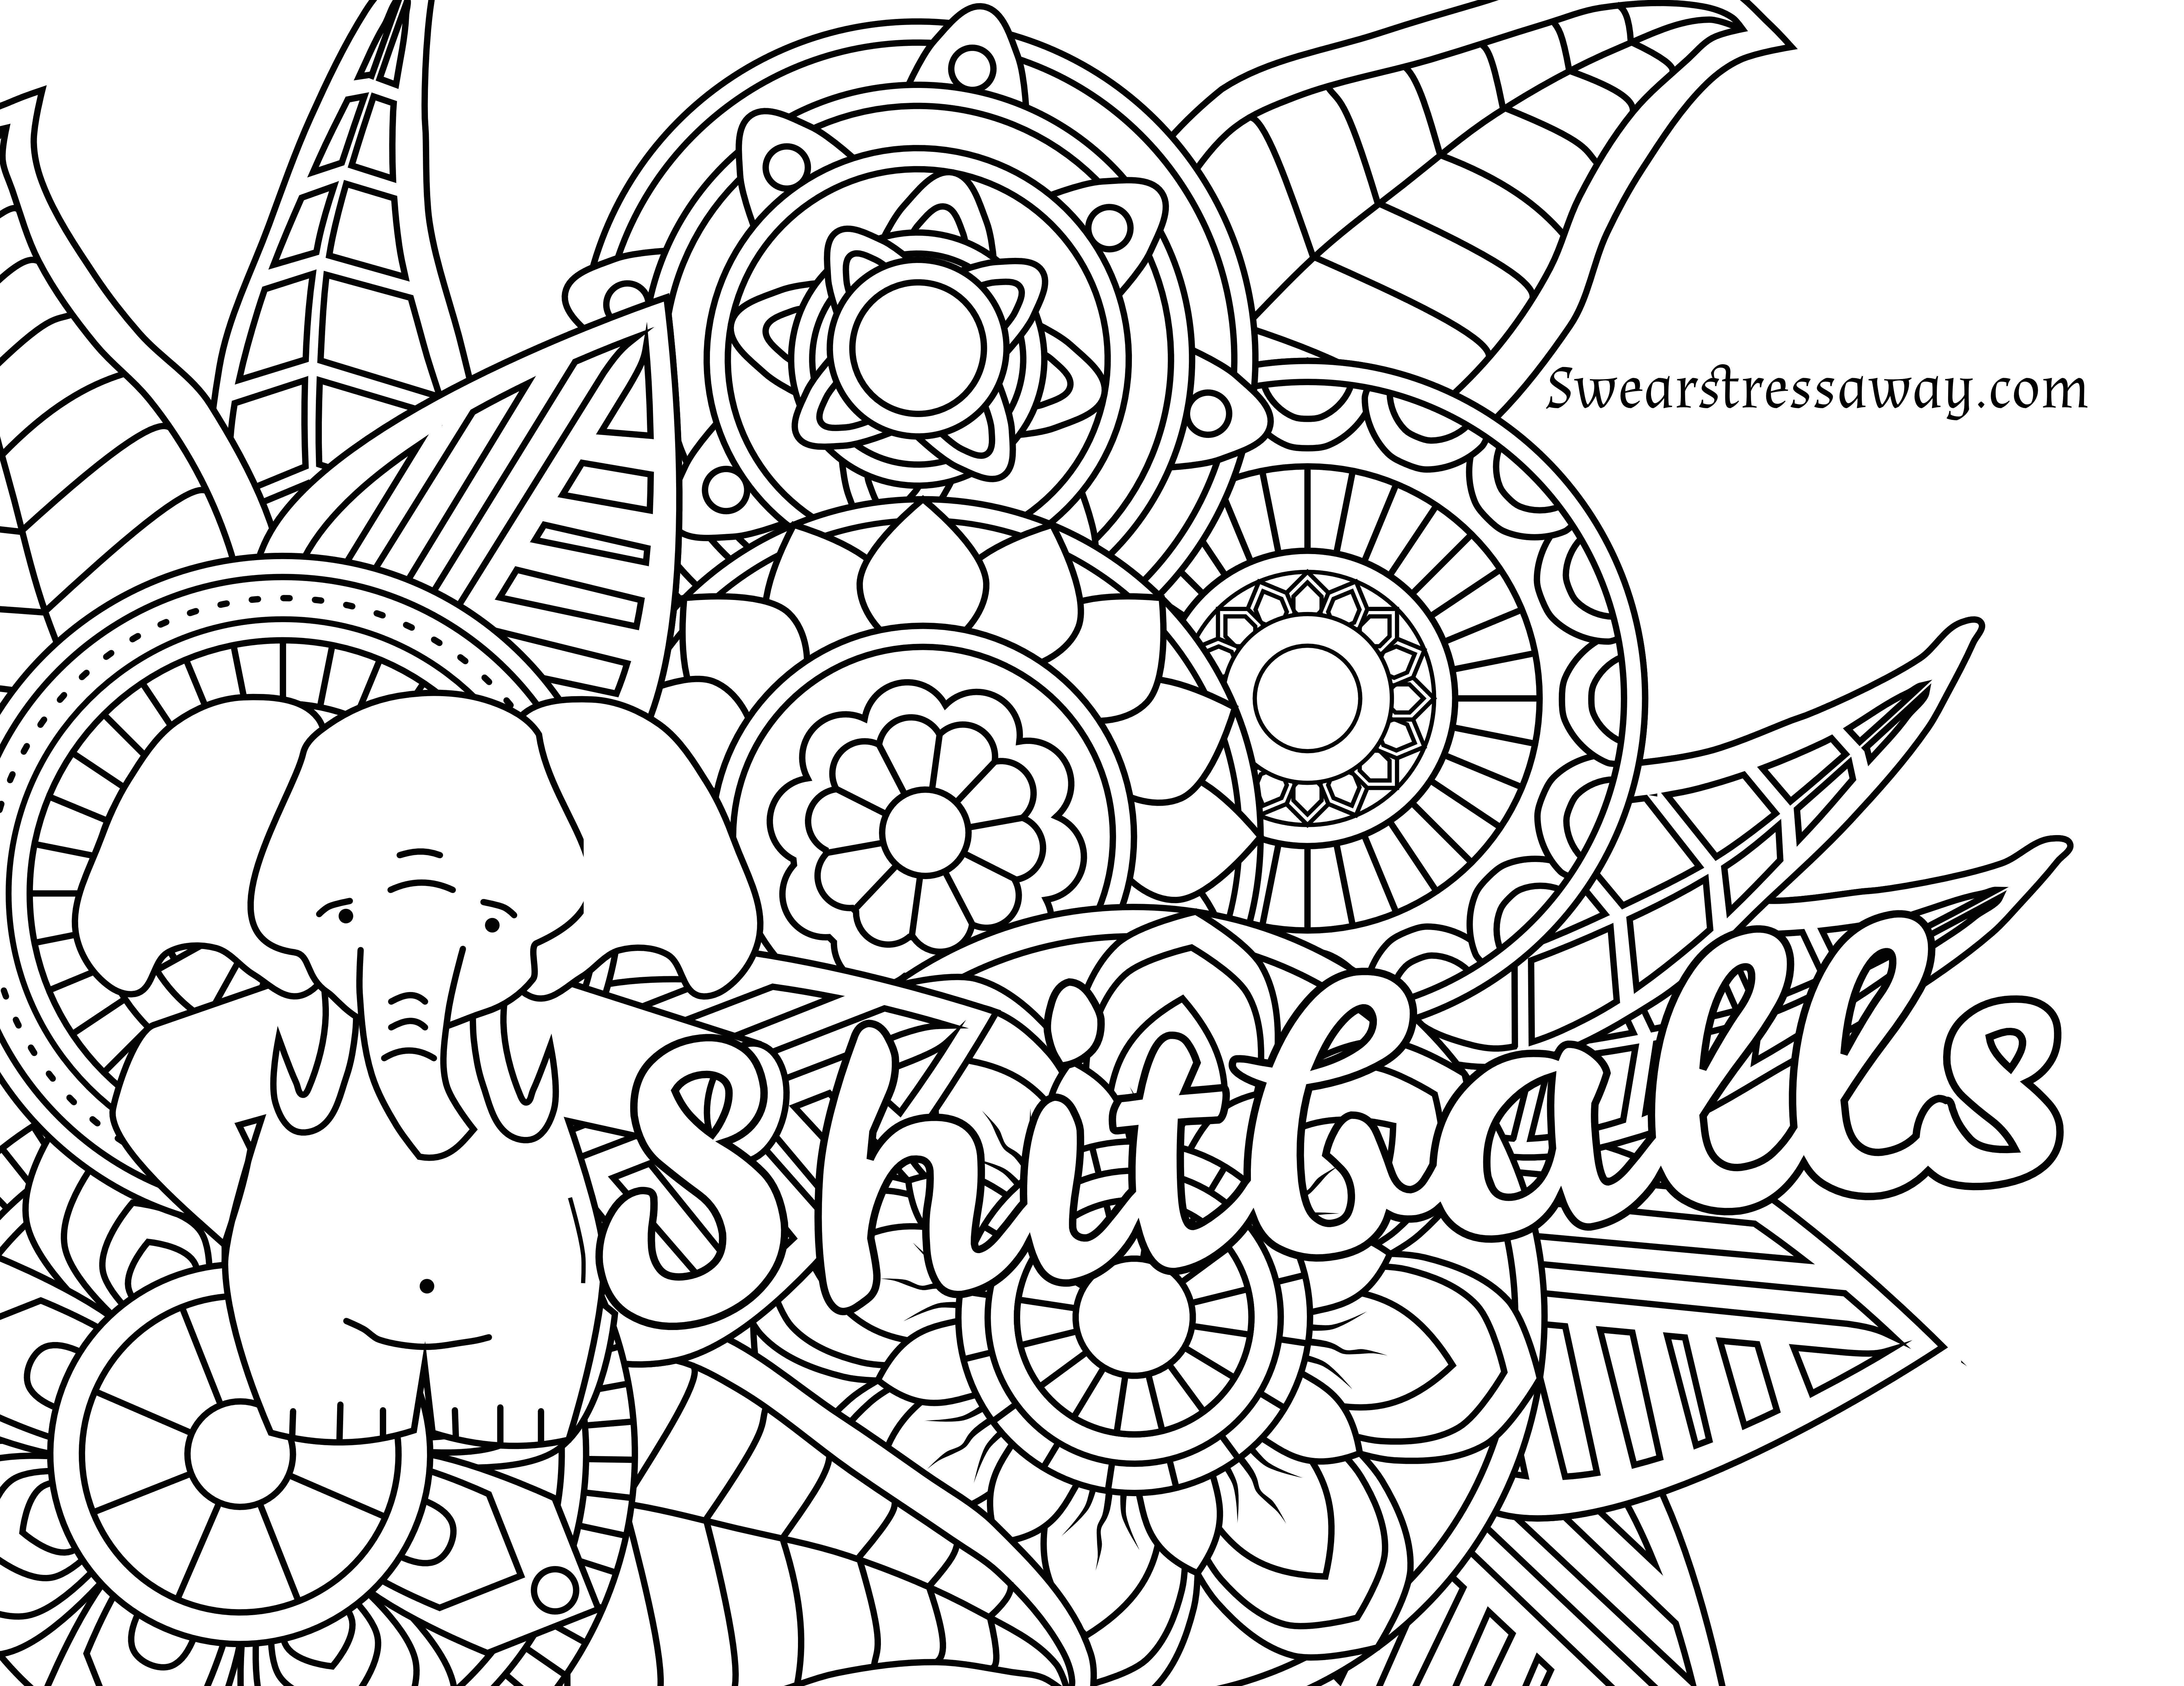 Coloring ~ Curse Word Coloring Pages Free Printable At Getdrawings - Free Printable Coloring Pages For Adults Swear Words